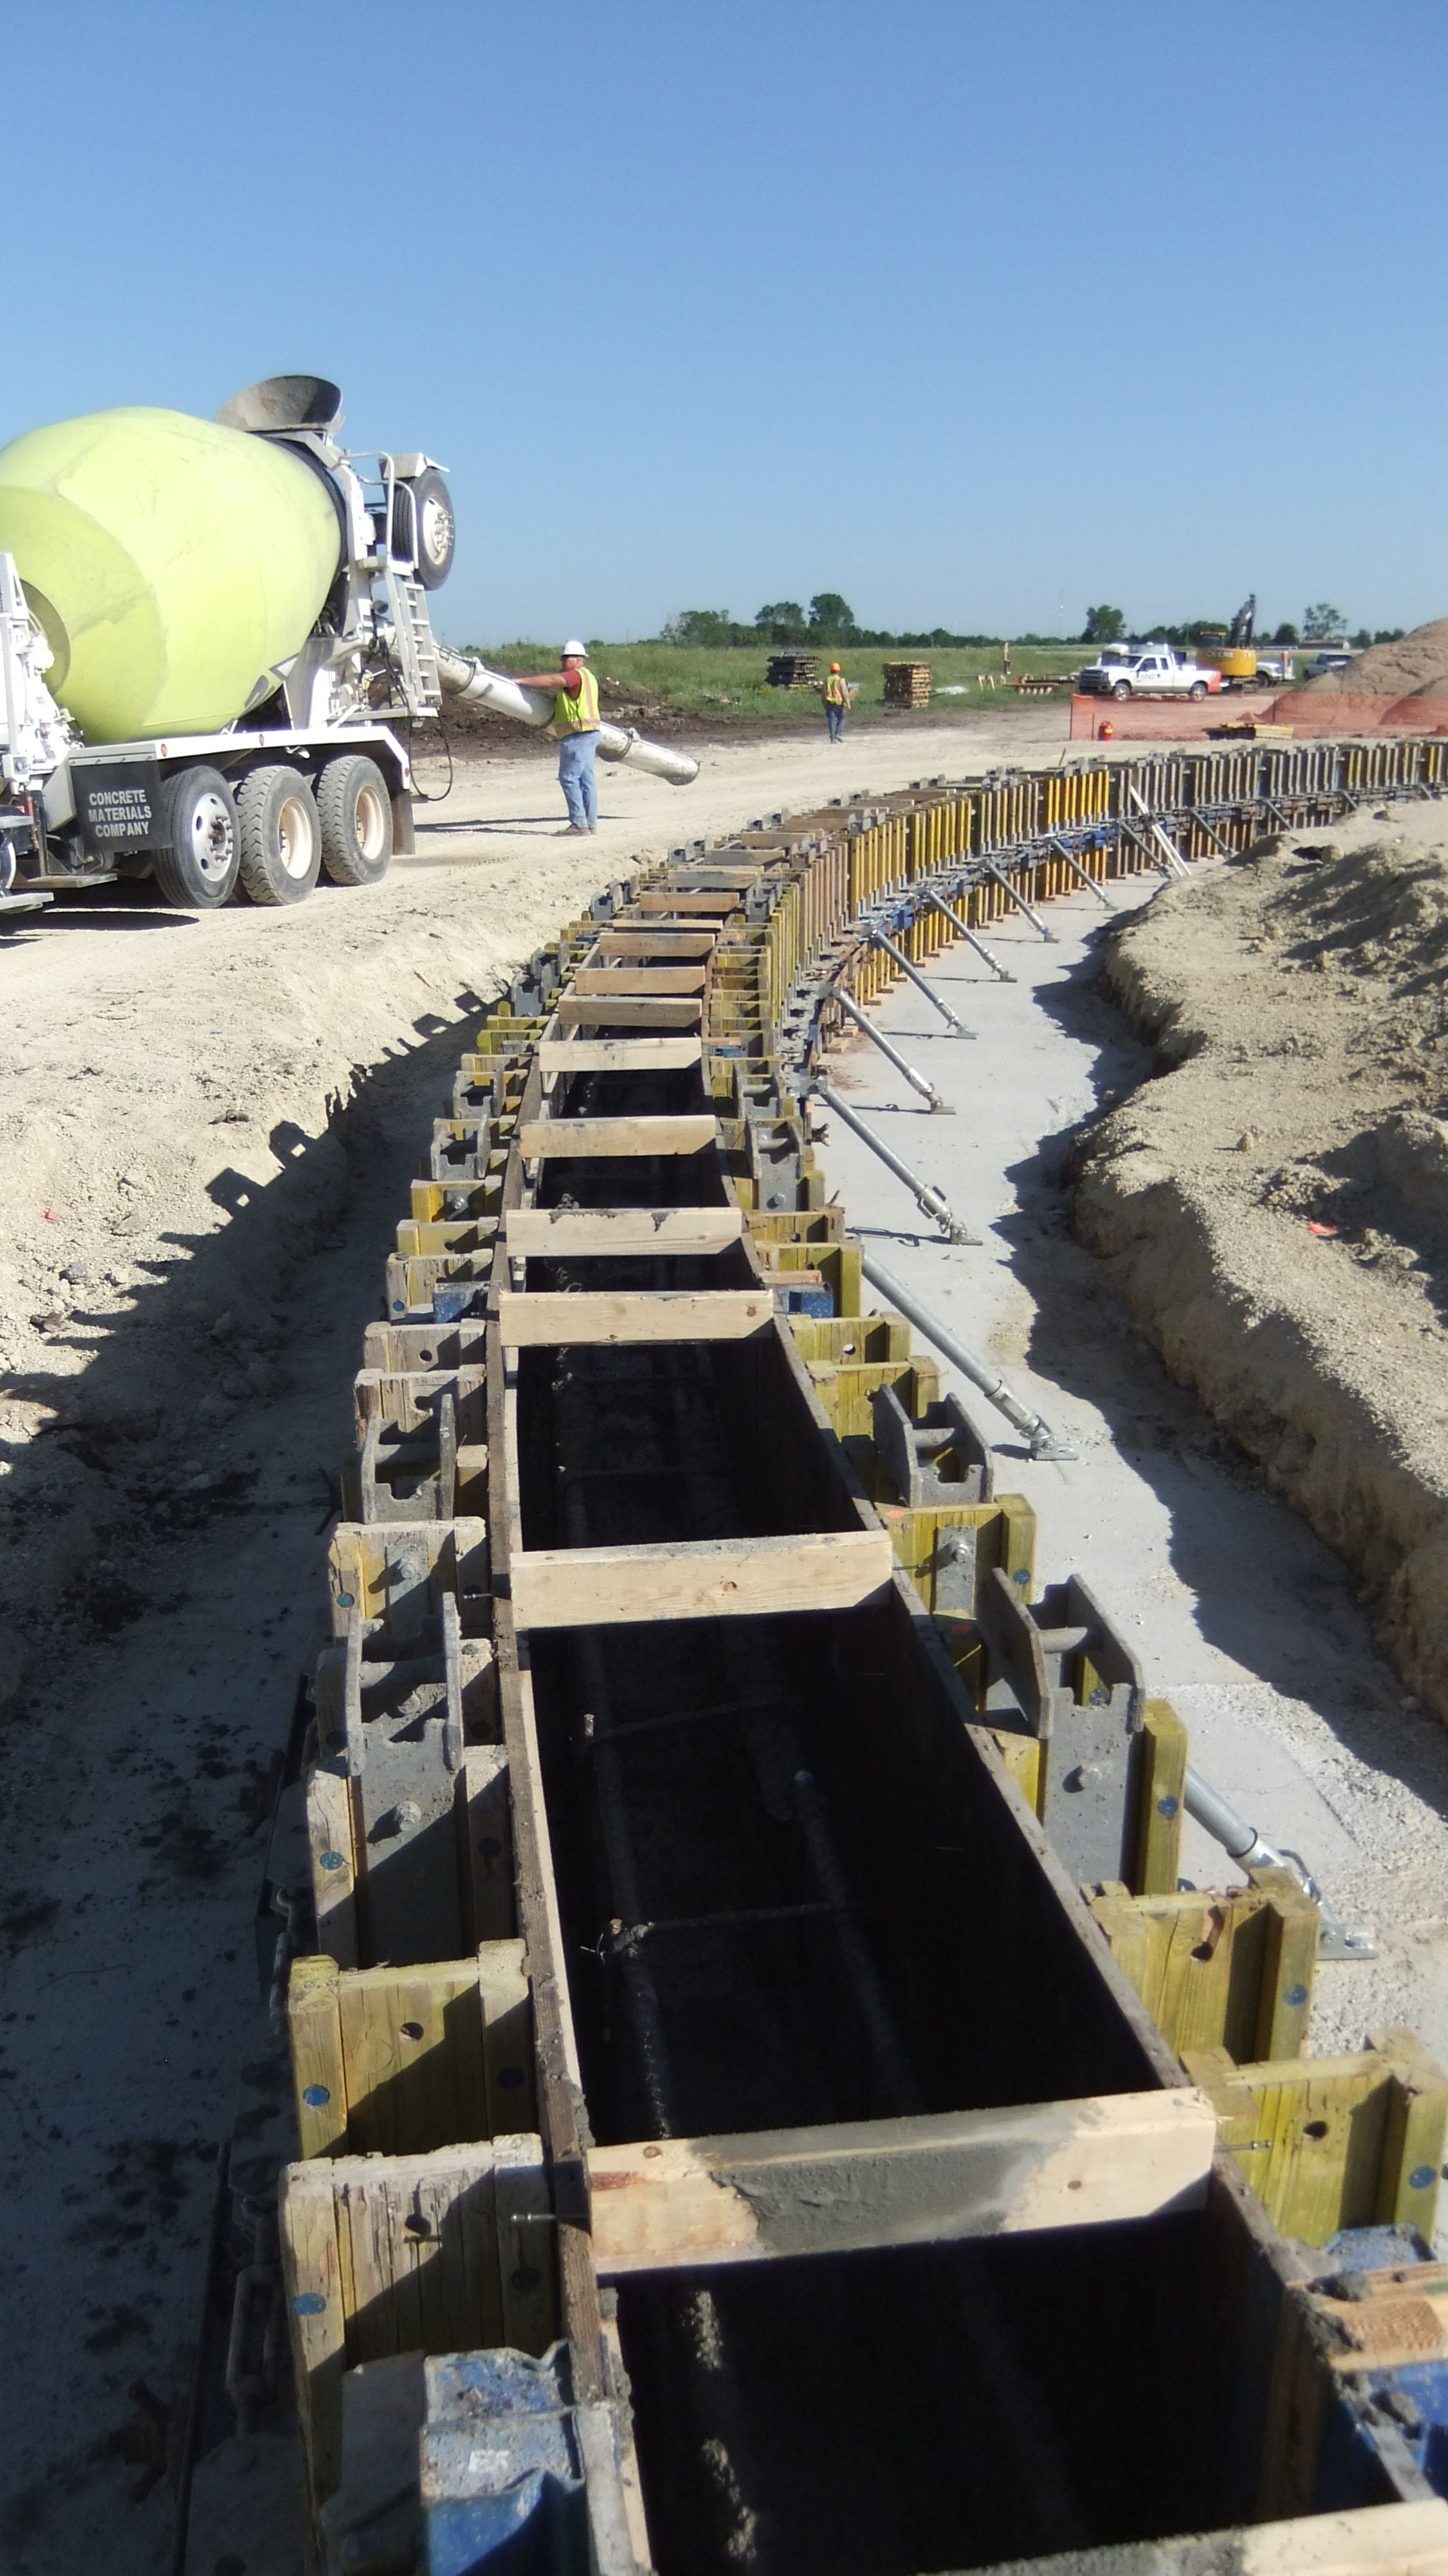 King Enterprise Group Uses Doka Www Dokausa Com Forms To Create The Concrete Base Of The Tank Ring Concrete Structure Building Foundation Construction Safety